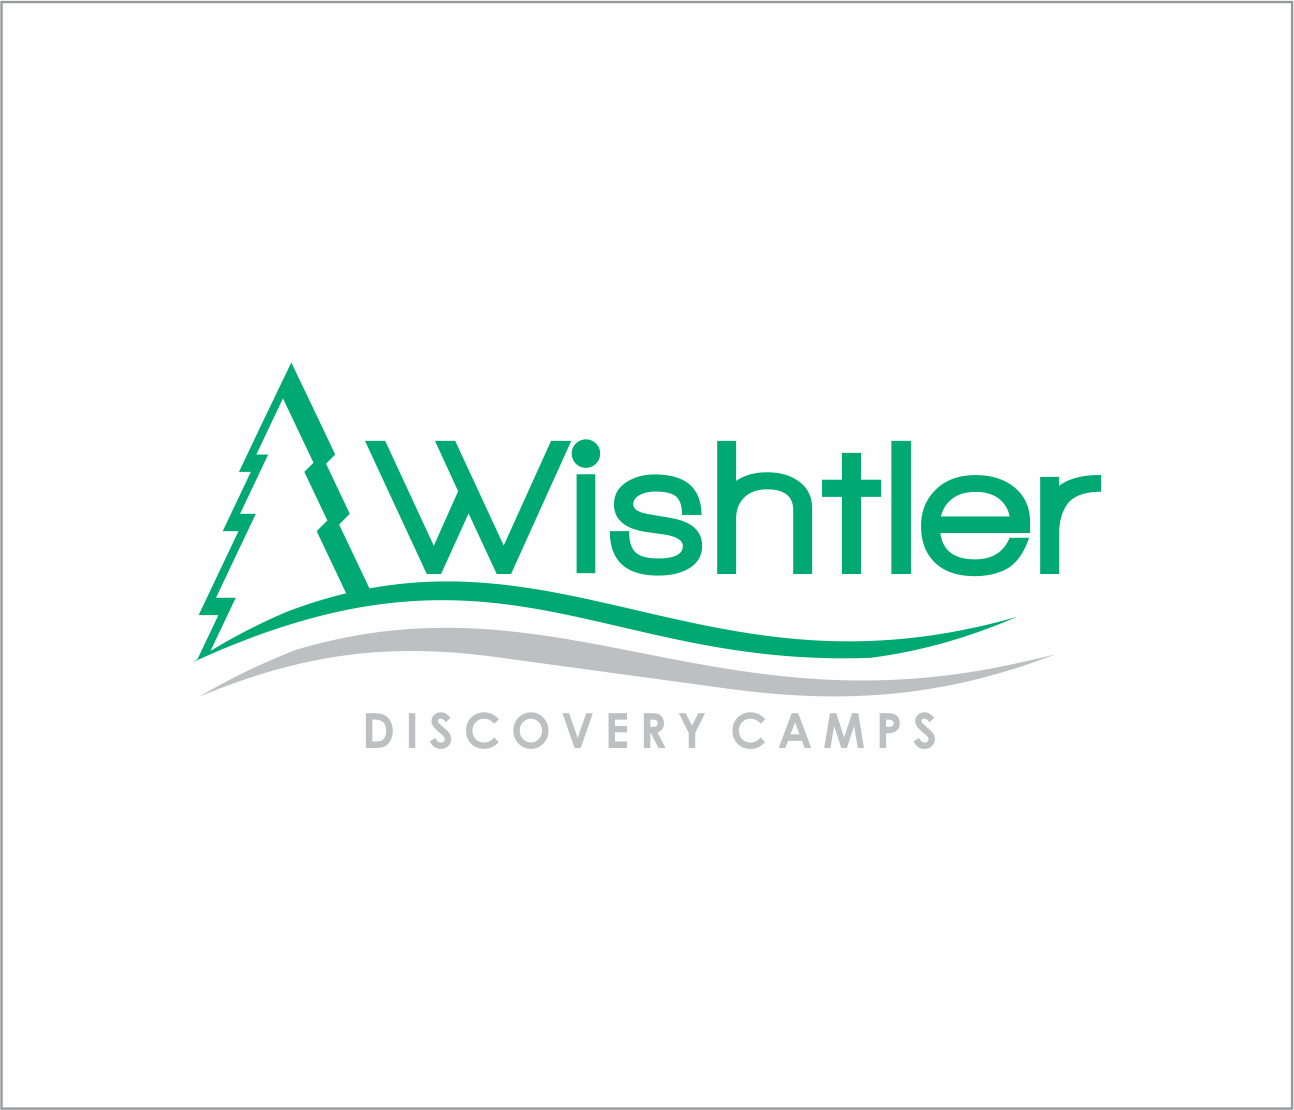 Logo Design by Armada Jamaluddin - Entry No. 124 in the Logo Design Contest Captivating Logo Design for Whistler Discovery Camps.